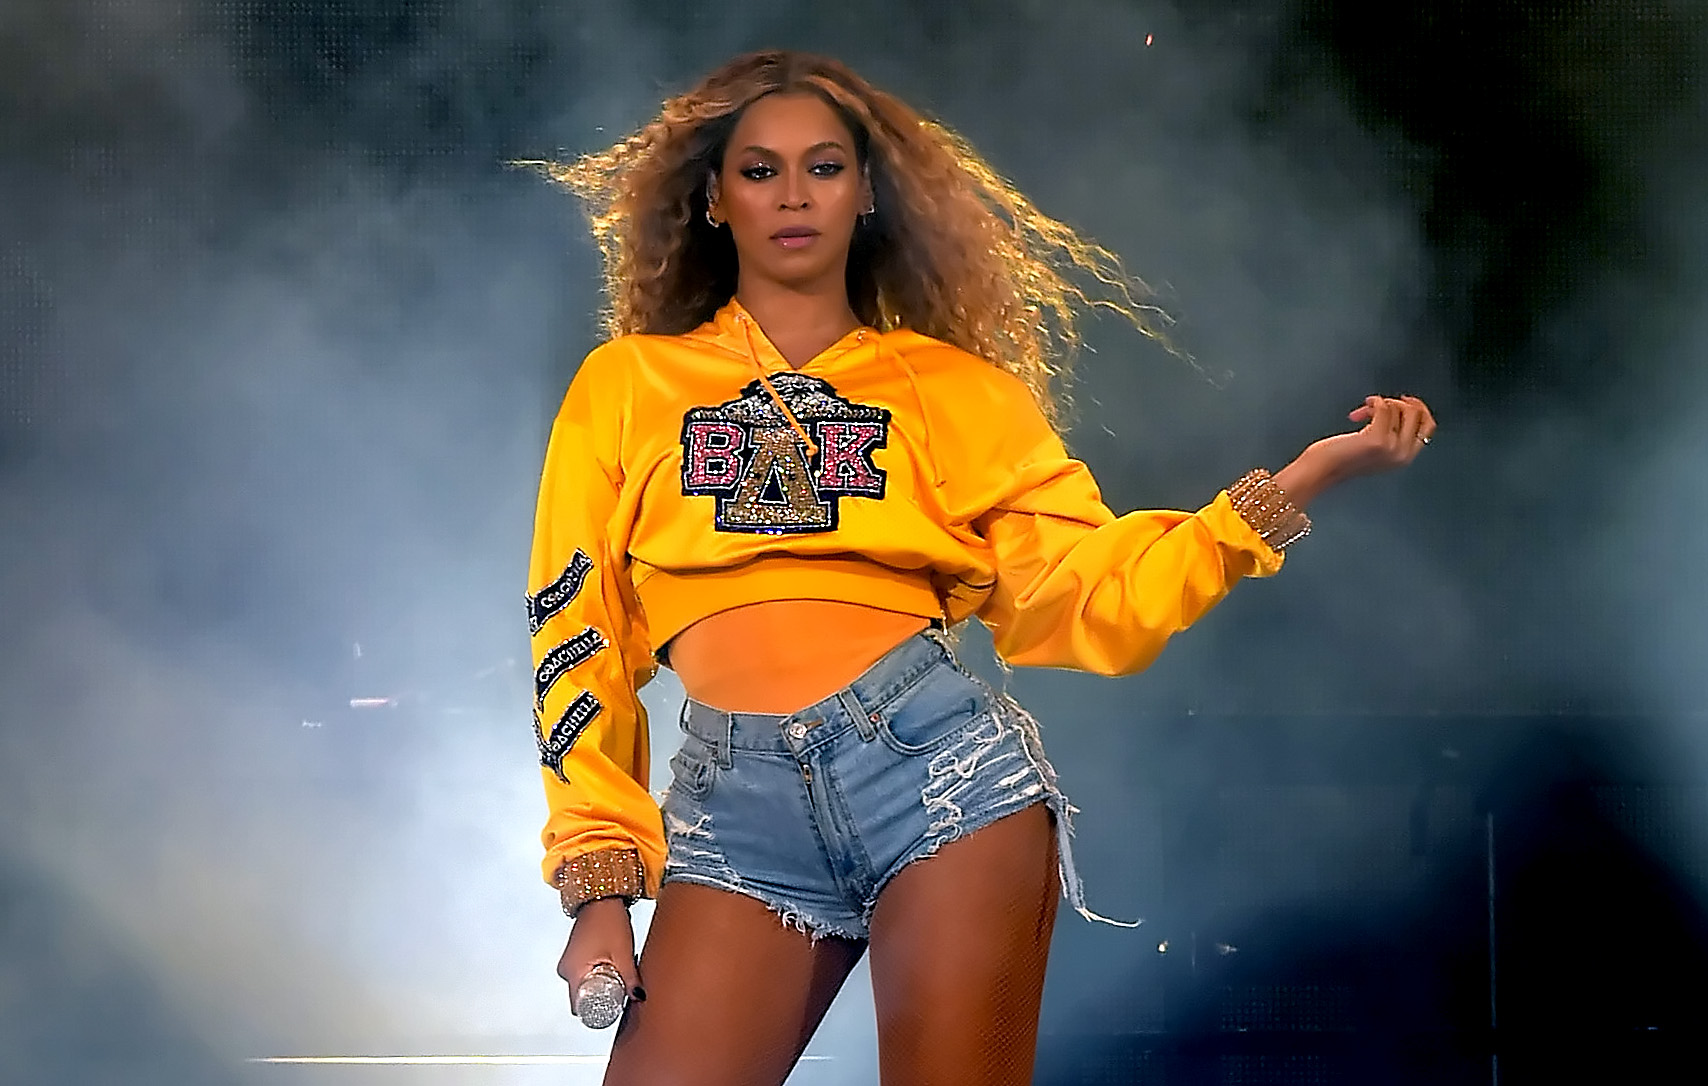 Beyoncé unleashed a surprise Destiny's Child reunion on an unsuspecting Coachella crowd, and Twitter basically lost it